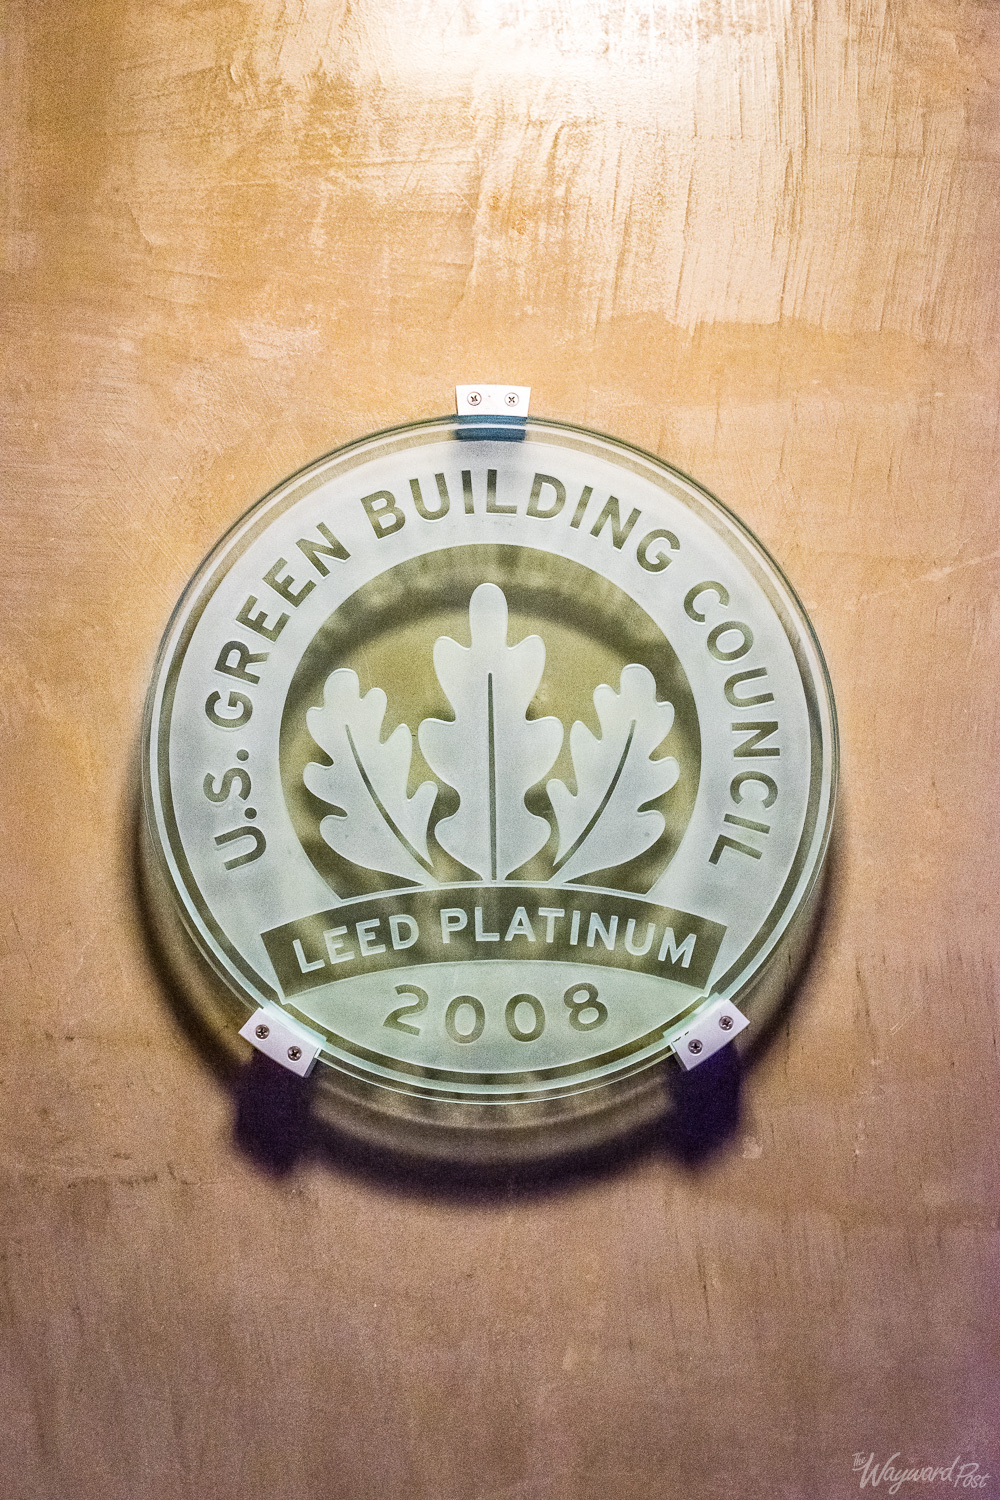 LEED Platinum Award from USGBC. Proximity Hotel, Greensboro - The Wayward Post. Photo by Zygmunt Spray.